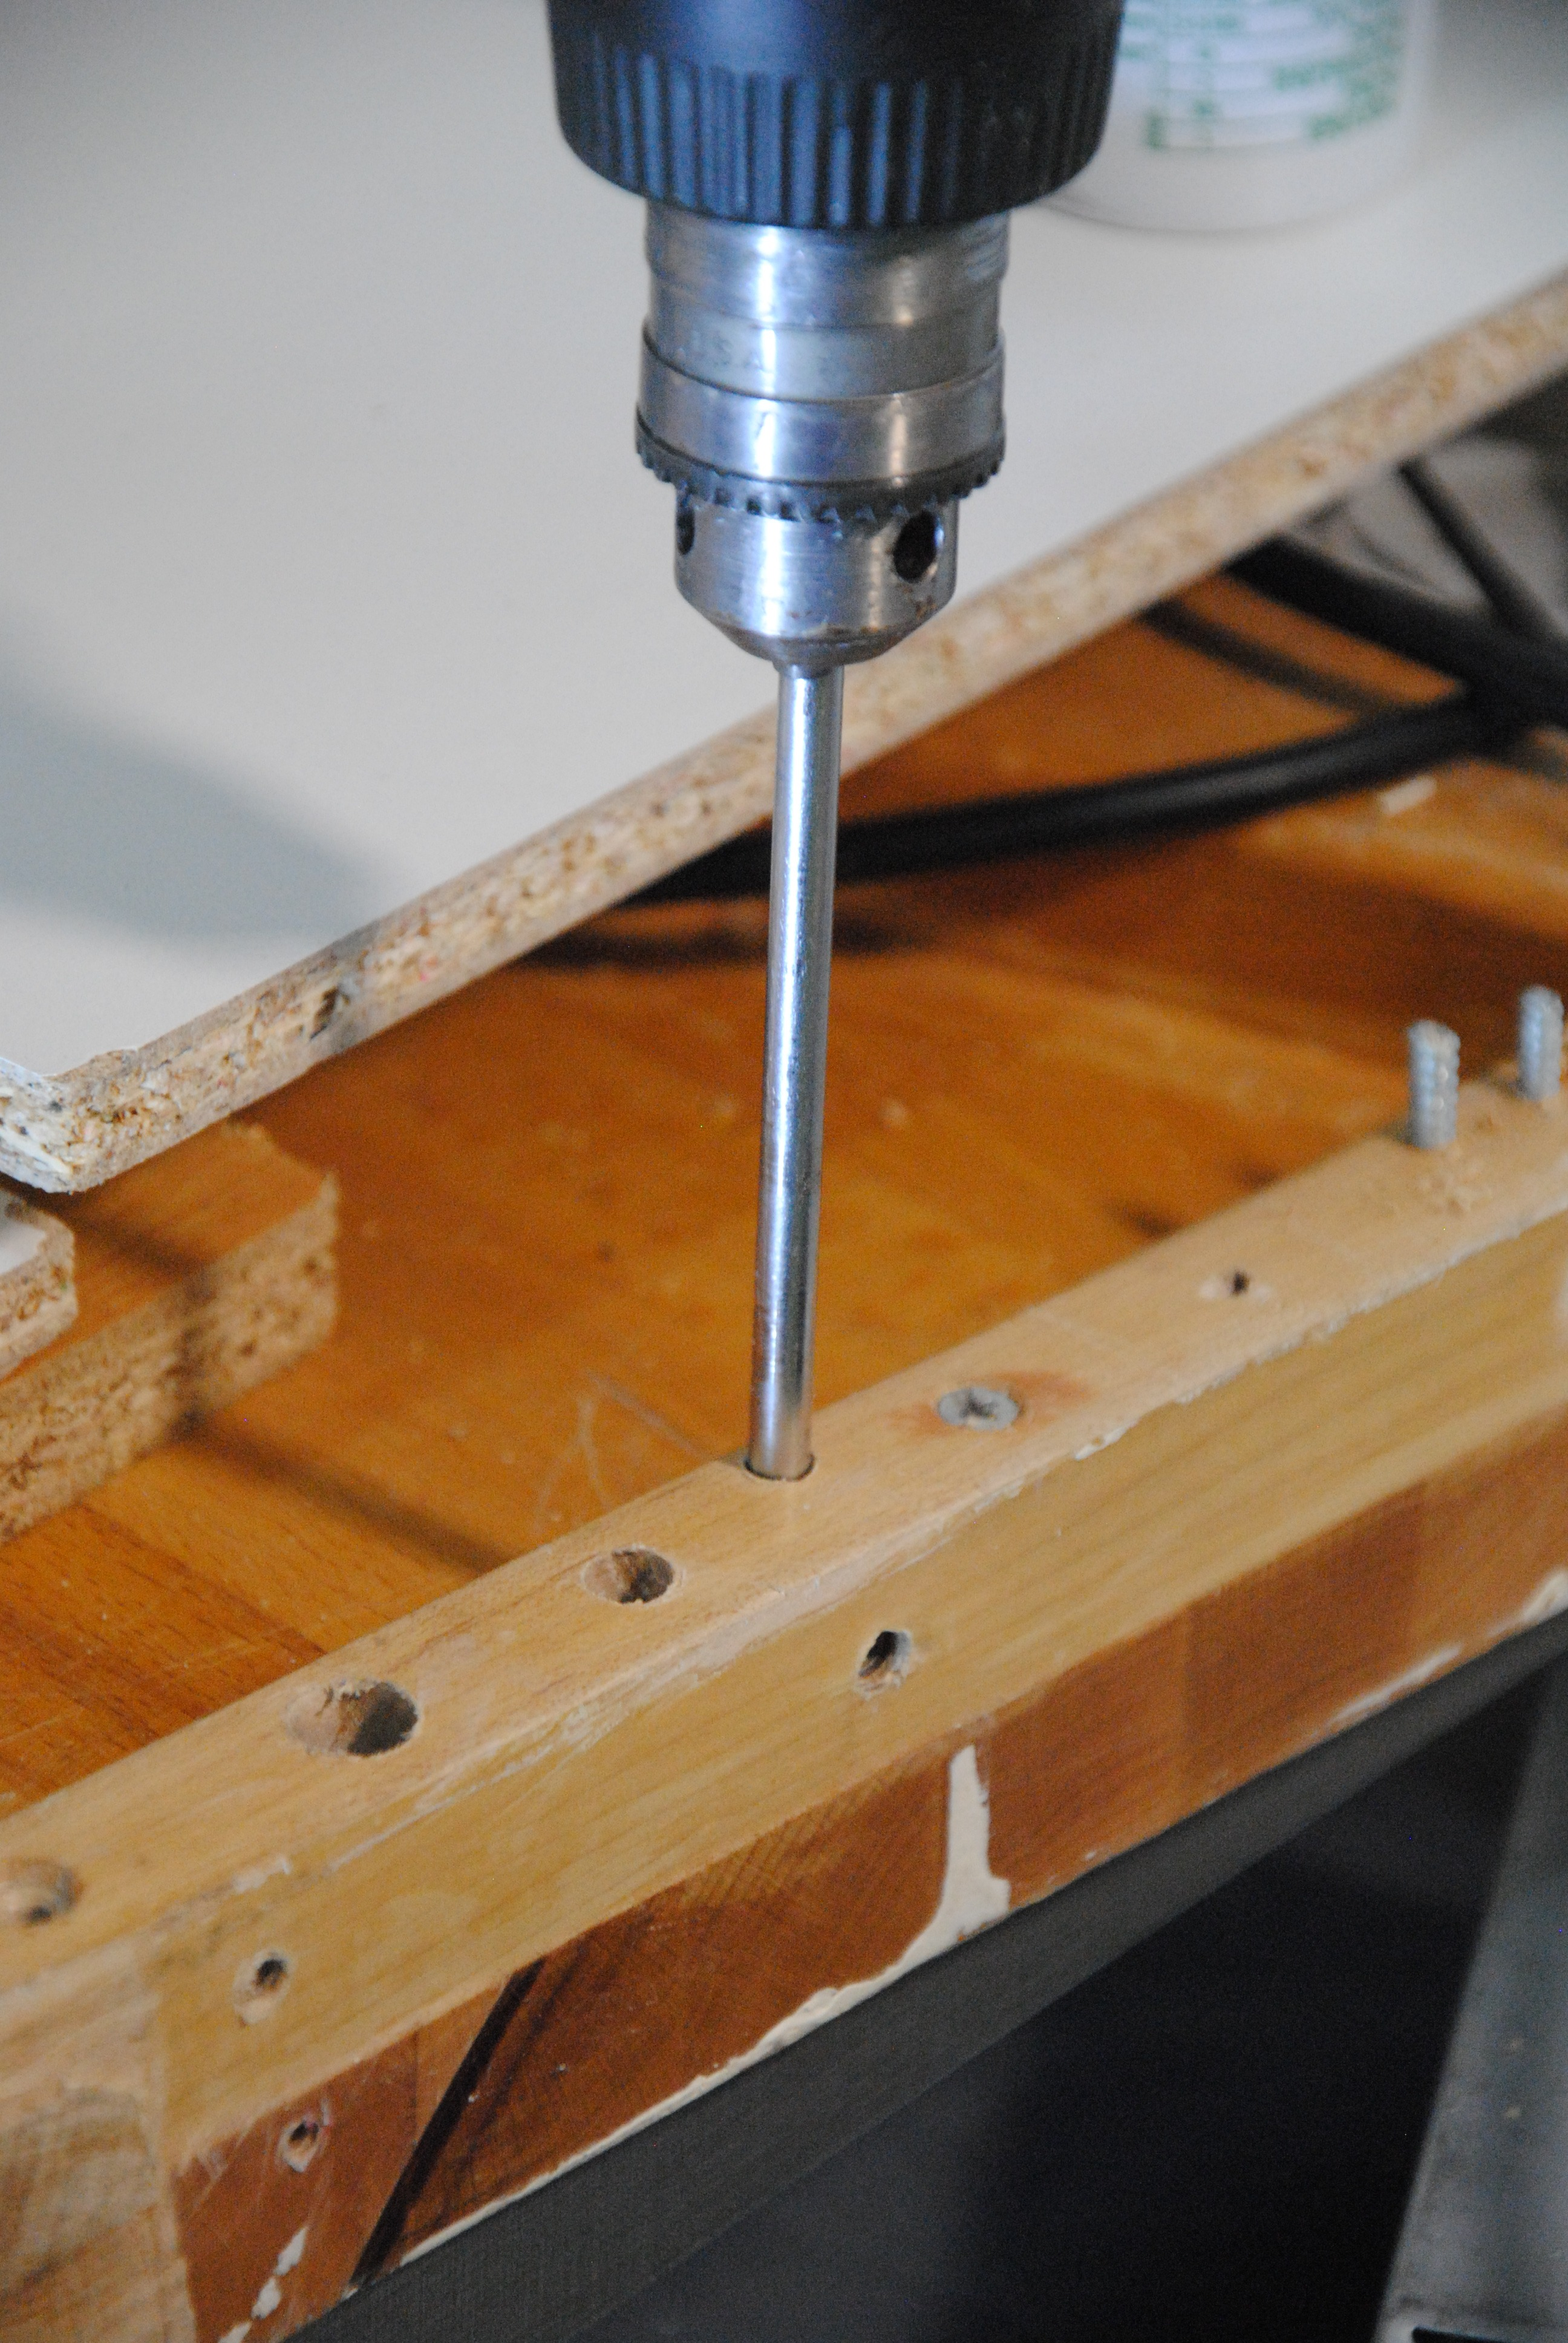 Picture of Drill Storage - a Hole in My Workbench!